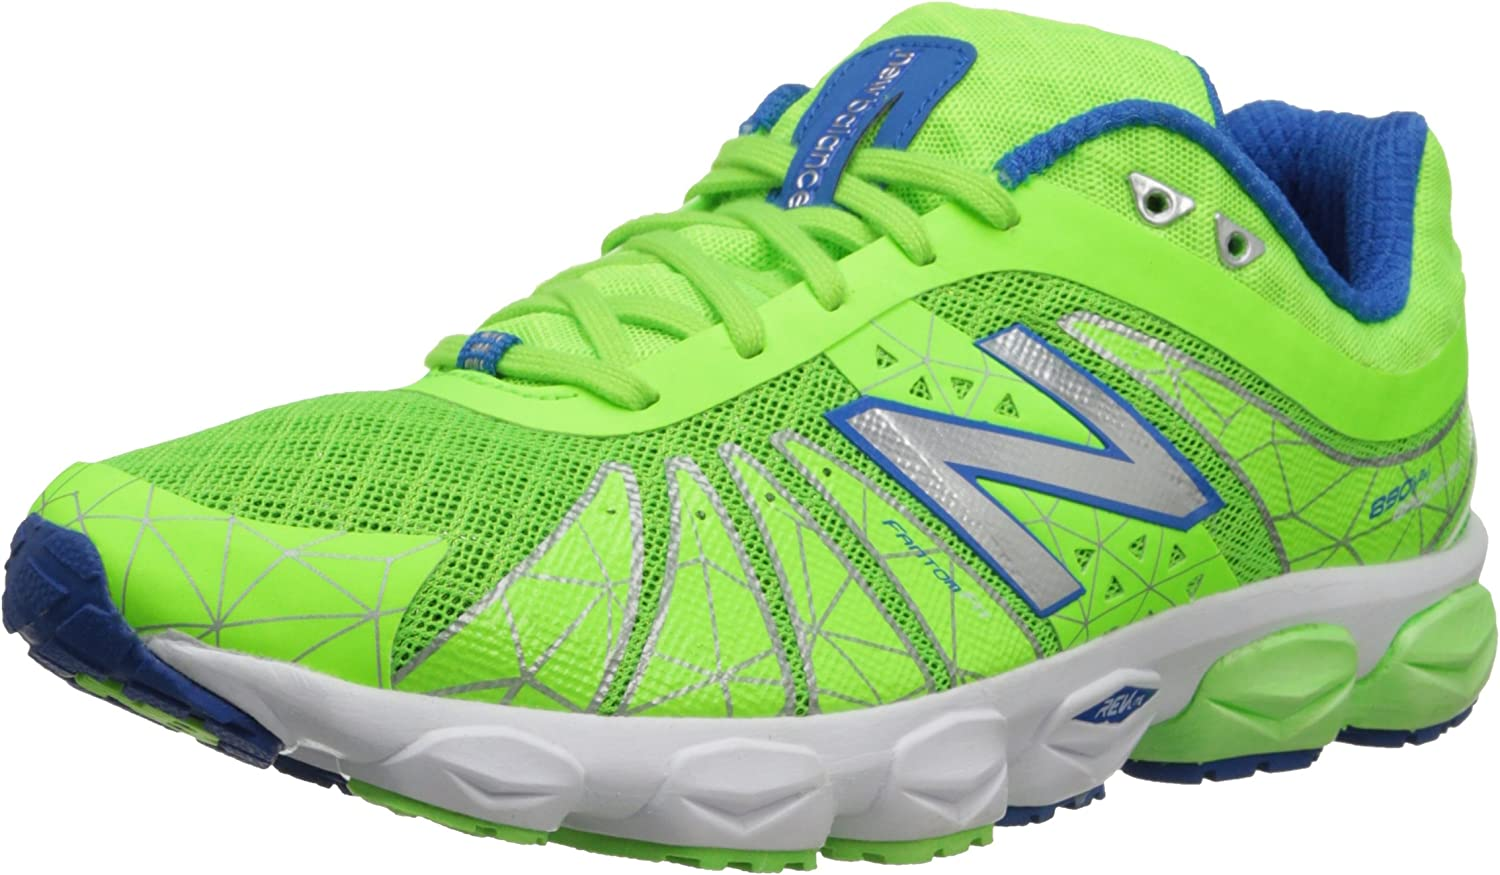 New Balance M890 V4 - Zapatos para hombre, Grün (GB4 GREEN/BLACK), 41.5: Amazon.es: Zapatos y complementos